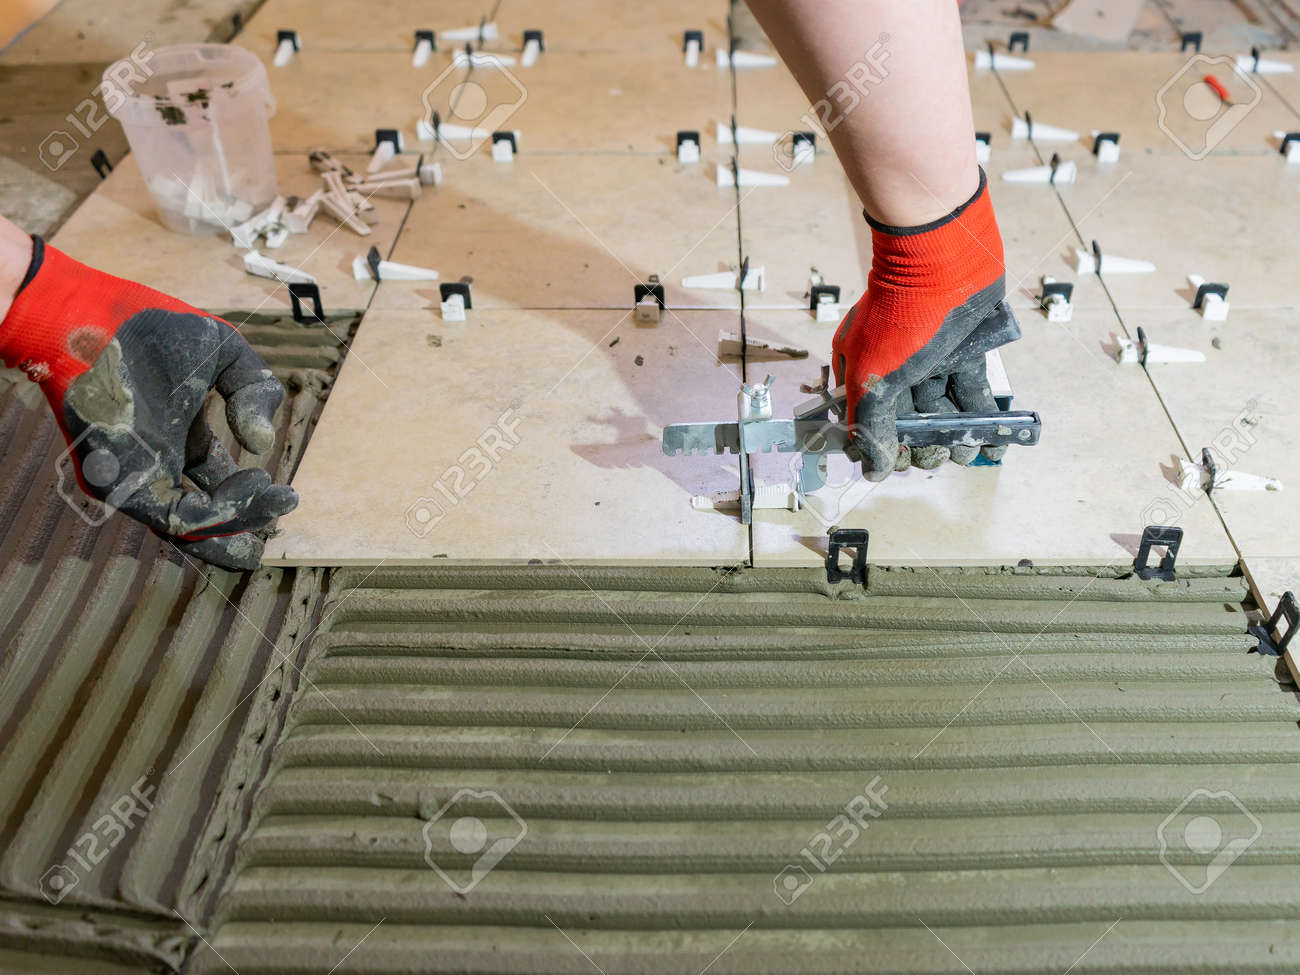 A worker is leveling the ceramic tile with wedges and clips. Tile leveling system - 171010421